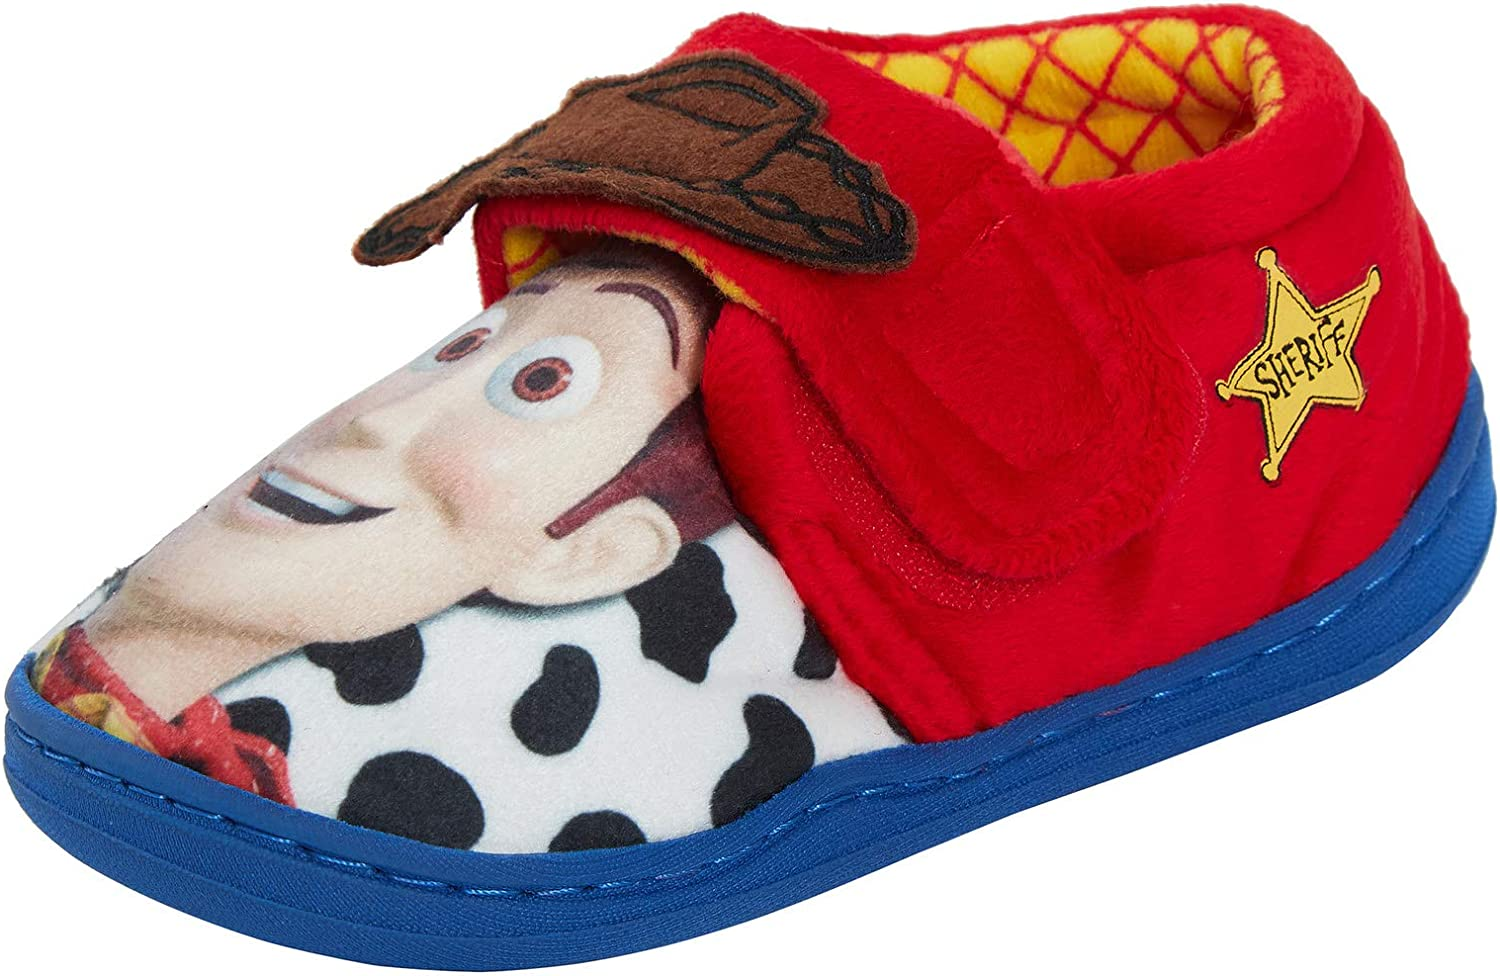 Disney Boys Toy Story Woody Slippers Shoes Size